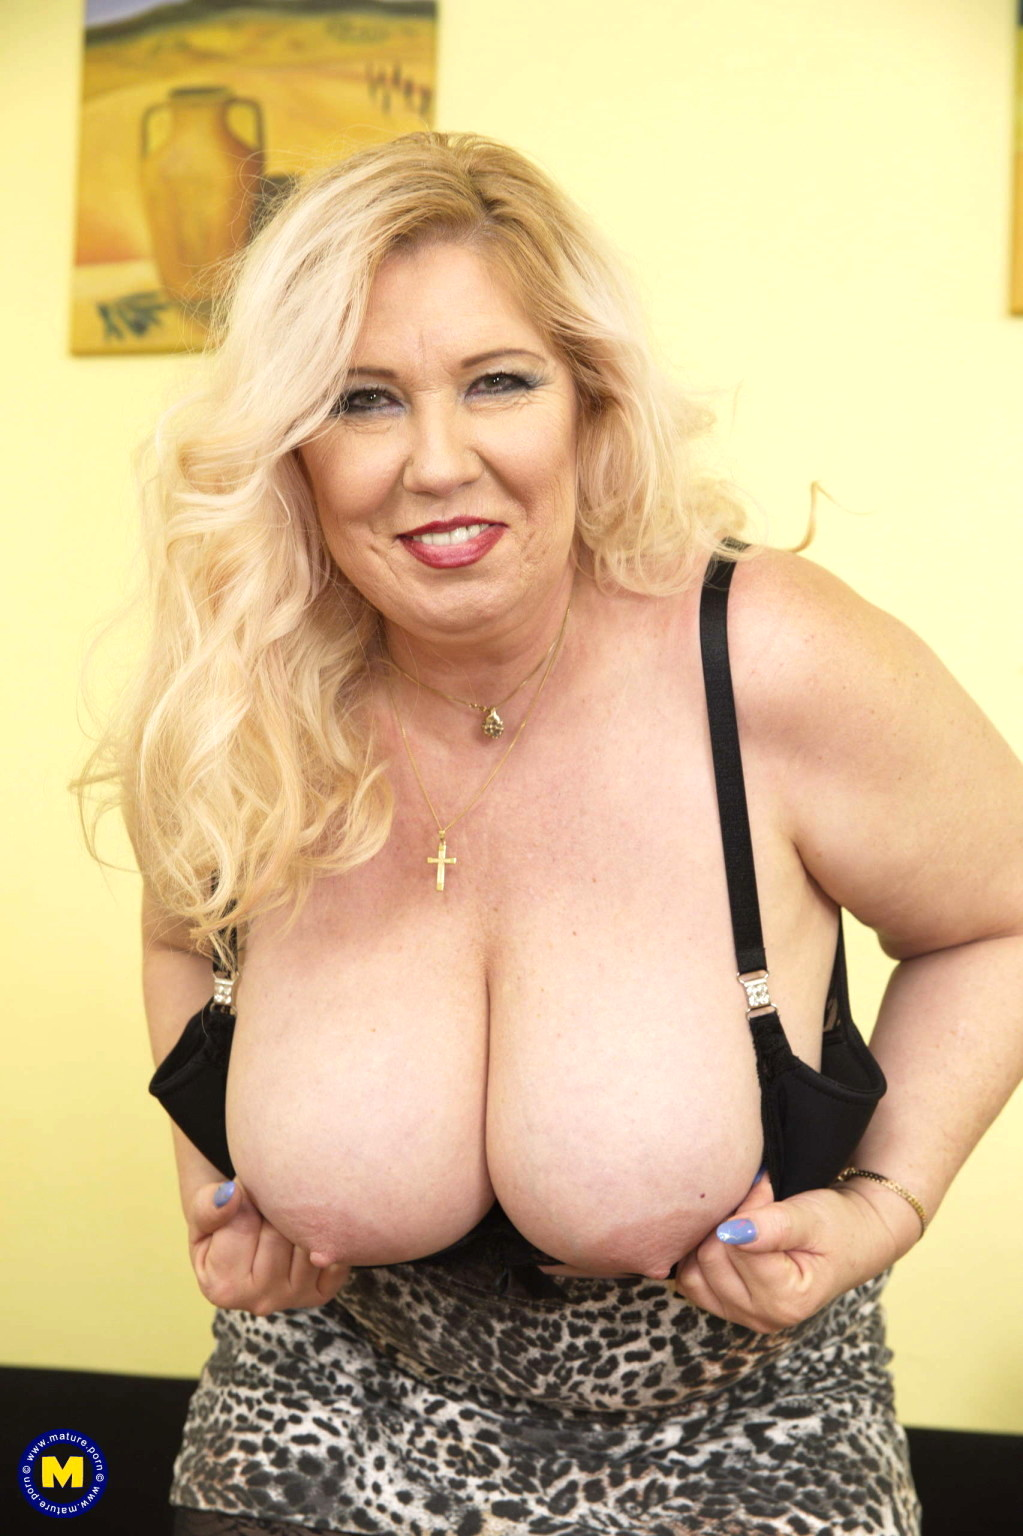 Babe Today Mature Nl Maturenl Model Nice Solo Archive Porn -3664